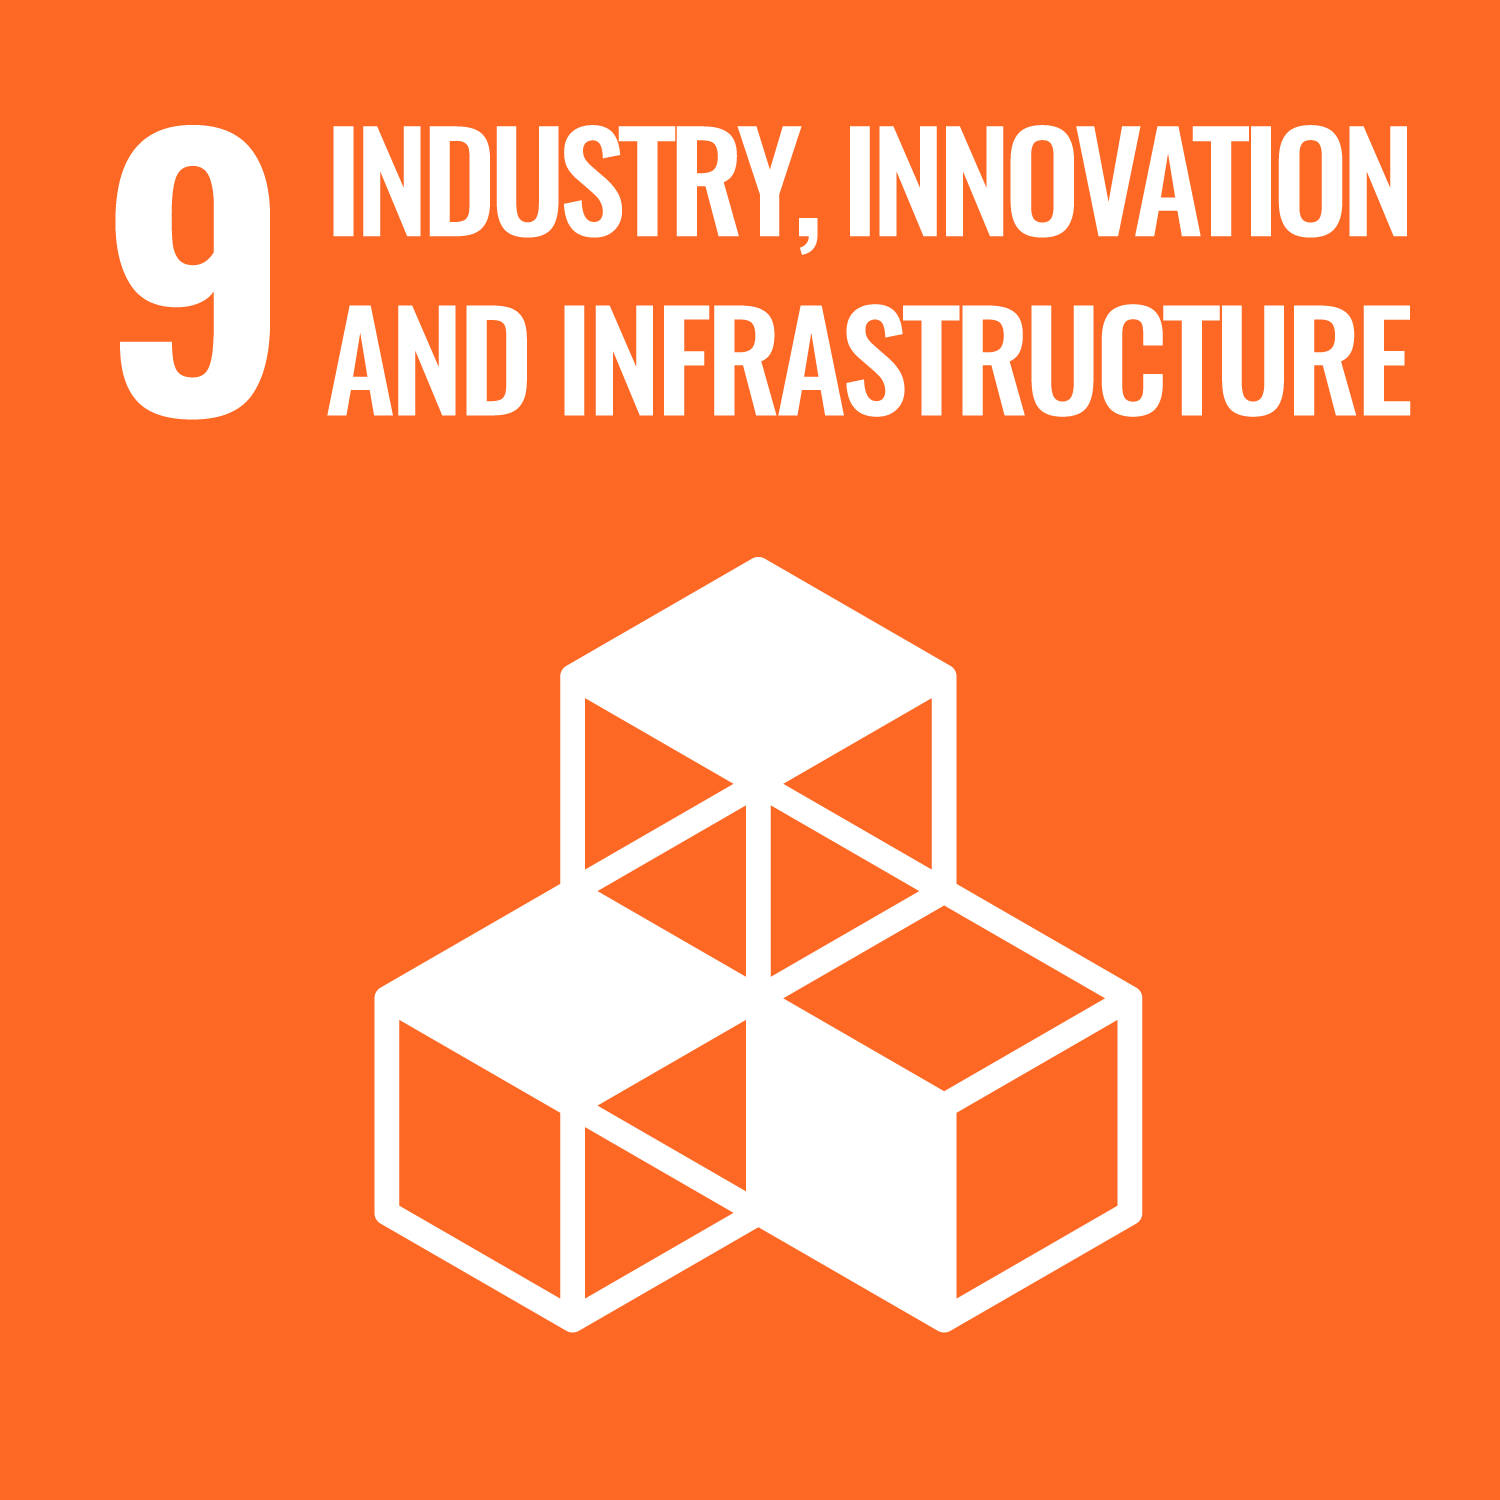 Industry, Innocation and Intrastructure Image